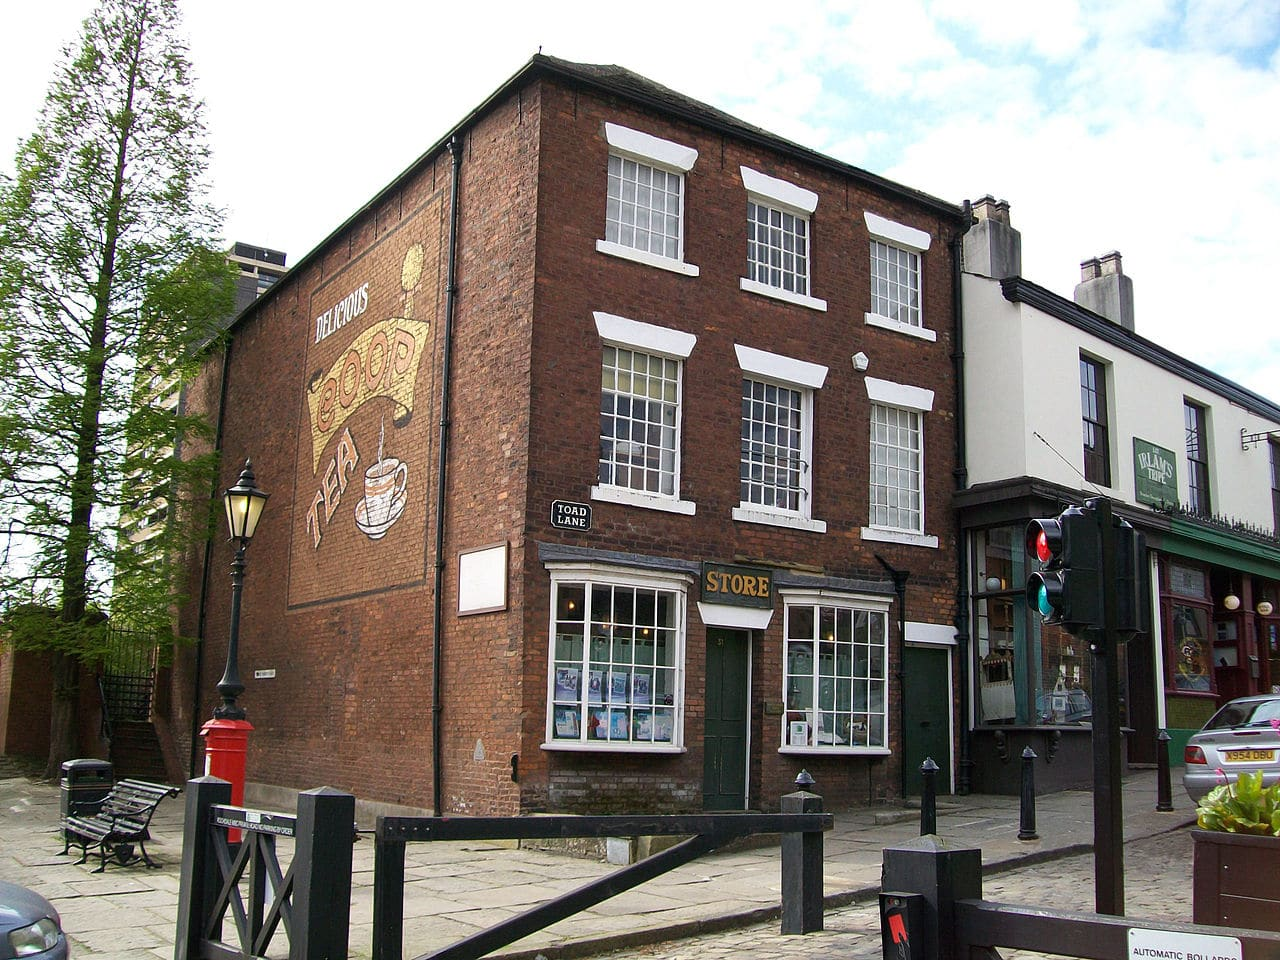 """First premises of """"The Rochdale Pioneers"""" early successful retail Co-operative, Rochdale England - now The Toad Lane Museum for Co-oprative. Photo taken 26 April 2009 by Scarletharlot69. (CC BY 3.0)."""